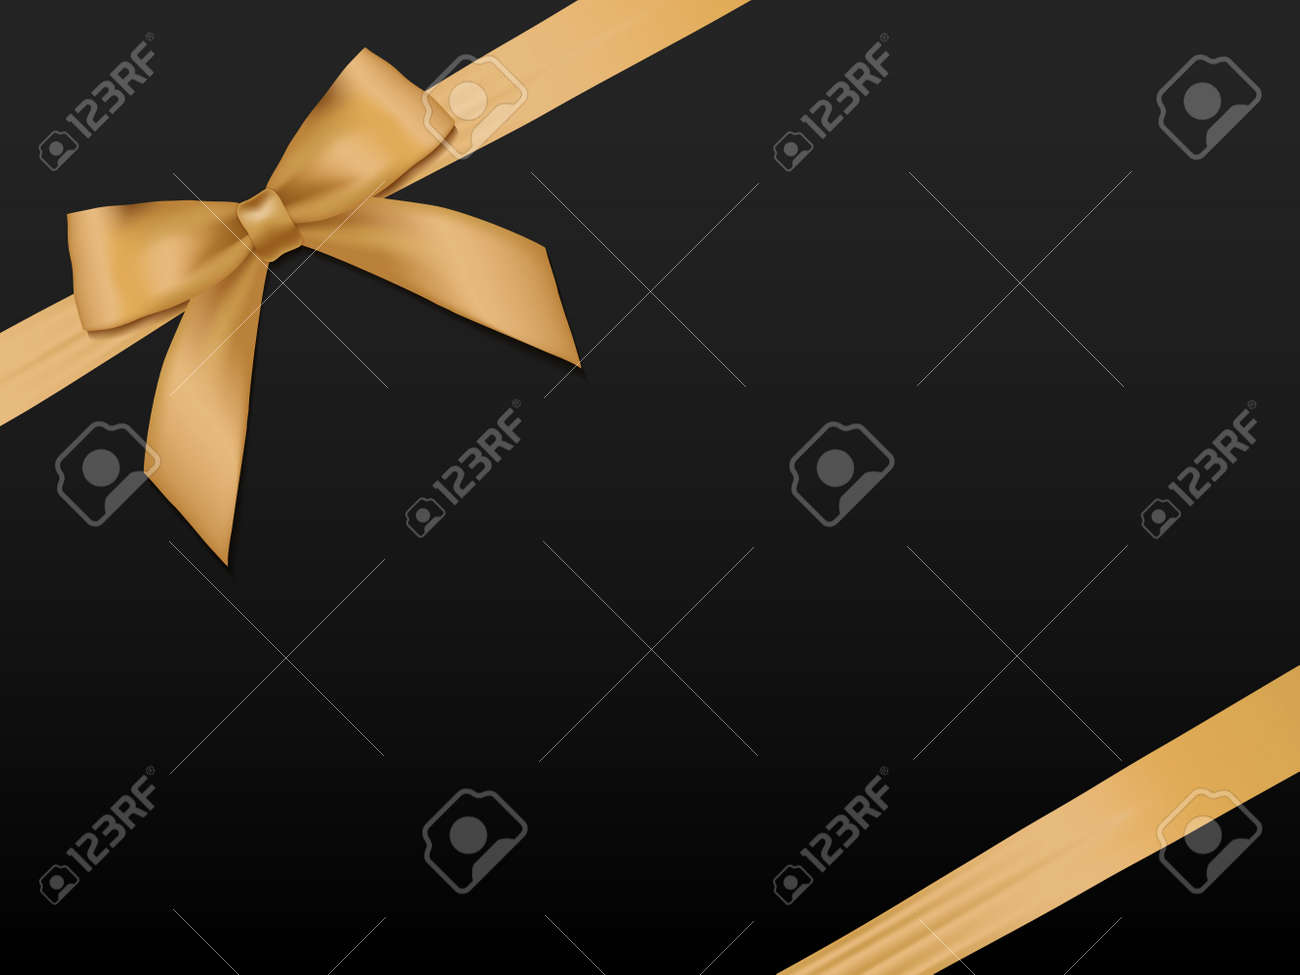 Gold Bow with ribbons. Shiny holiday gold satin ribbon on black background. Gift coupon, voucher, card template. - 51069340